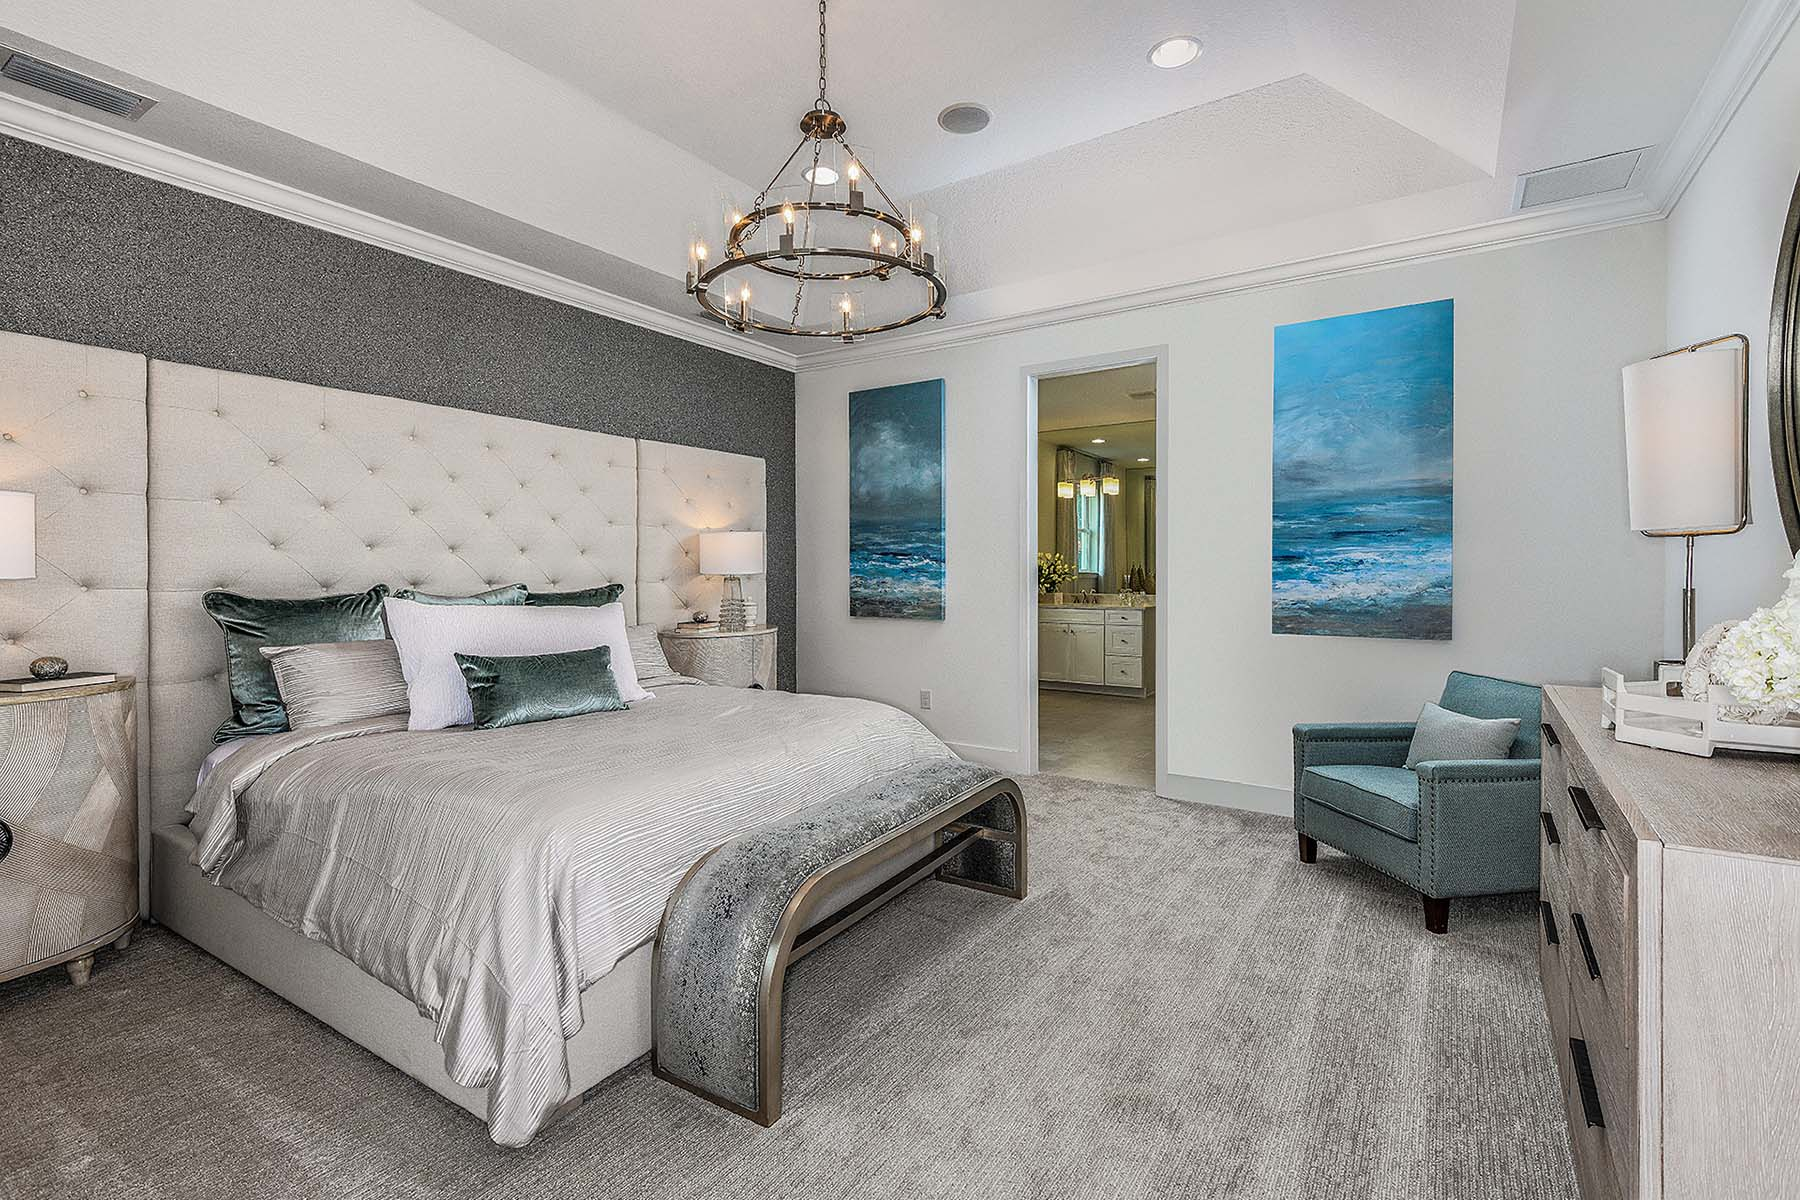 Jubilee II Plan Bedroom at Compass Landing in Naples Florida by Mattamy Homes